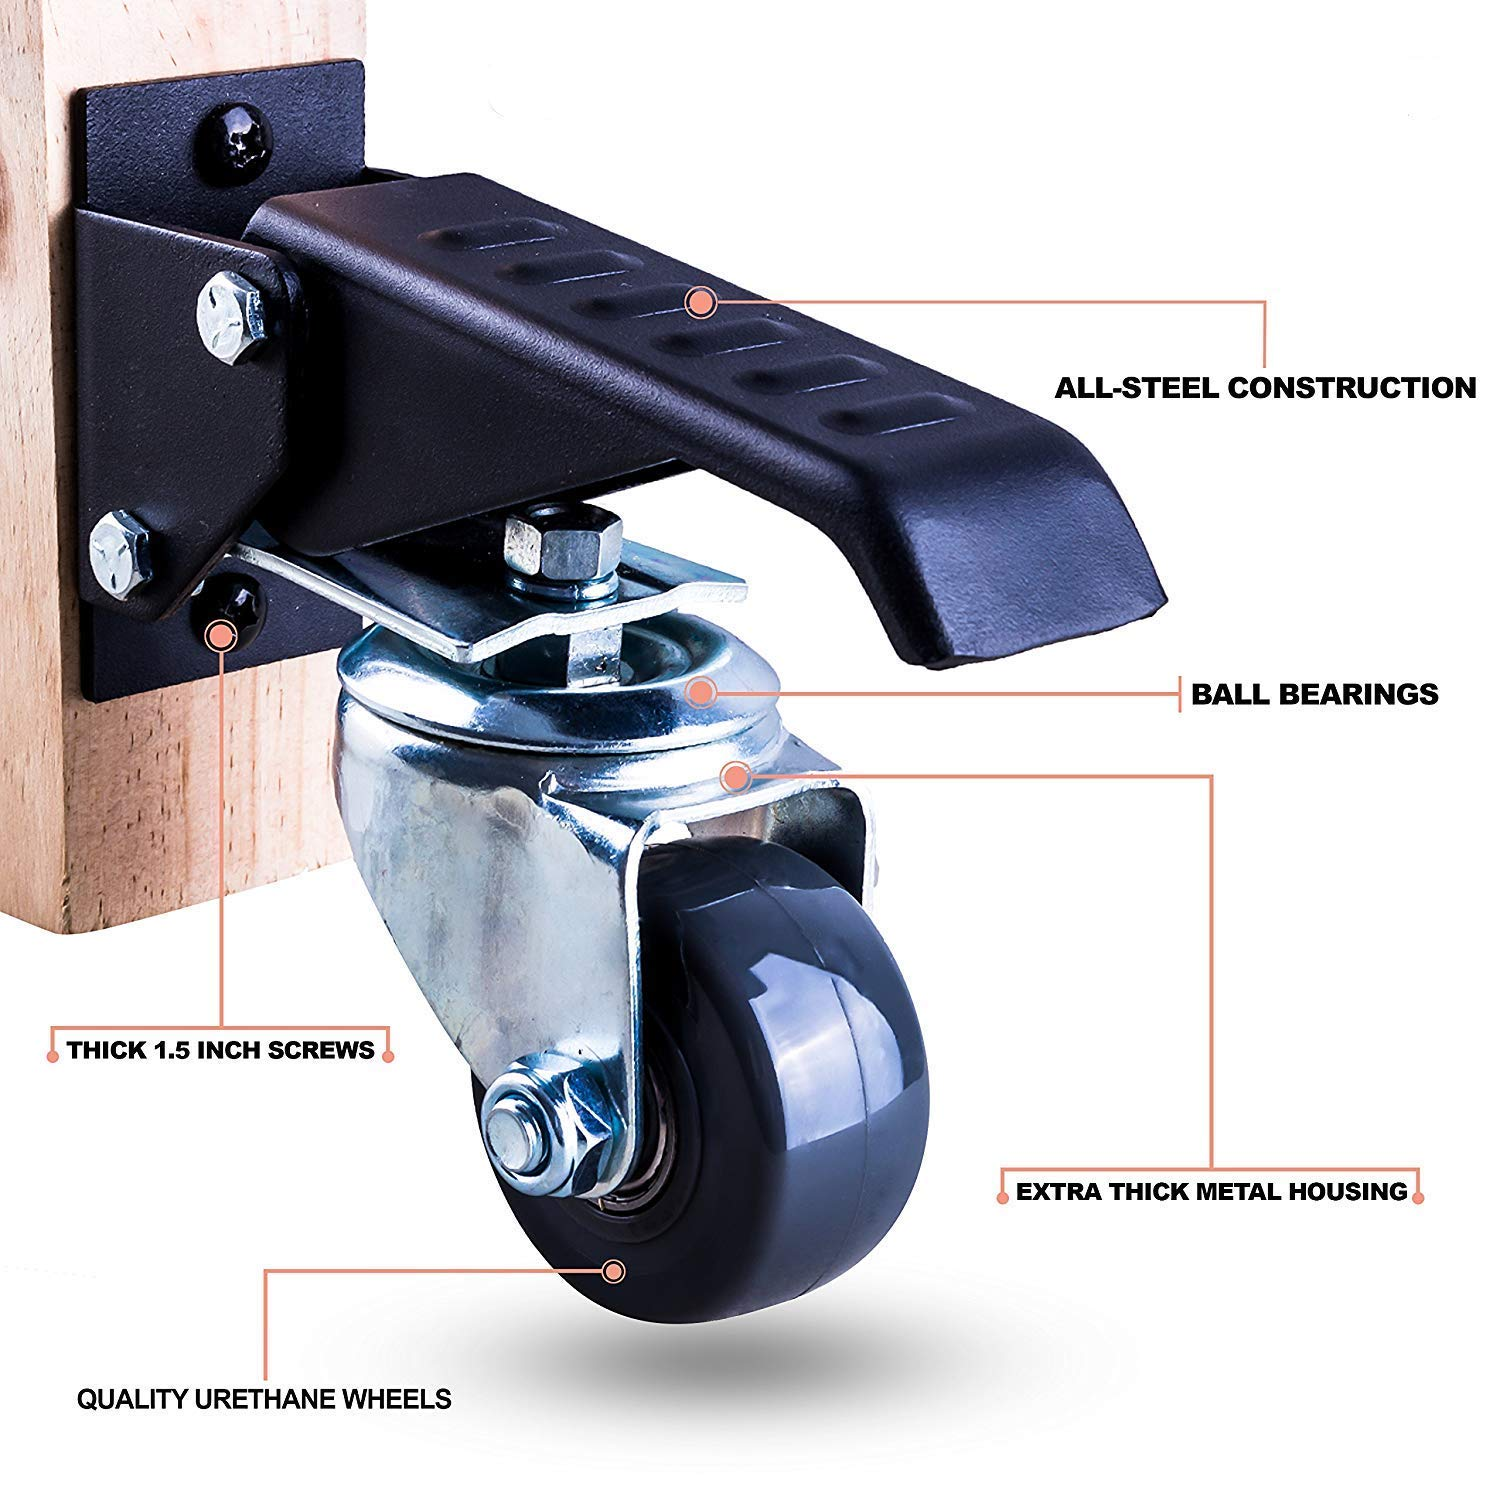 Workbench Caster kit - 4 Extra Heavy Duty Retractable casters, 800 lbs Weight Capacity, Urethane Wheels by Whistler (Image #1)